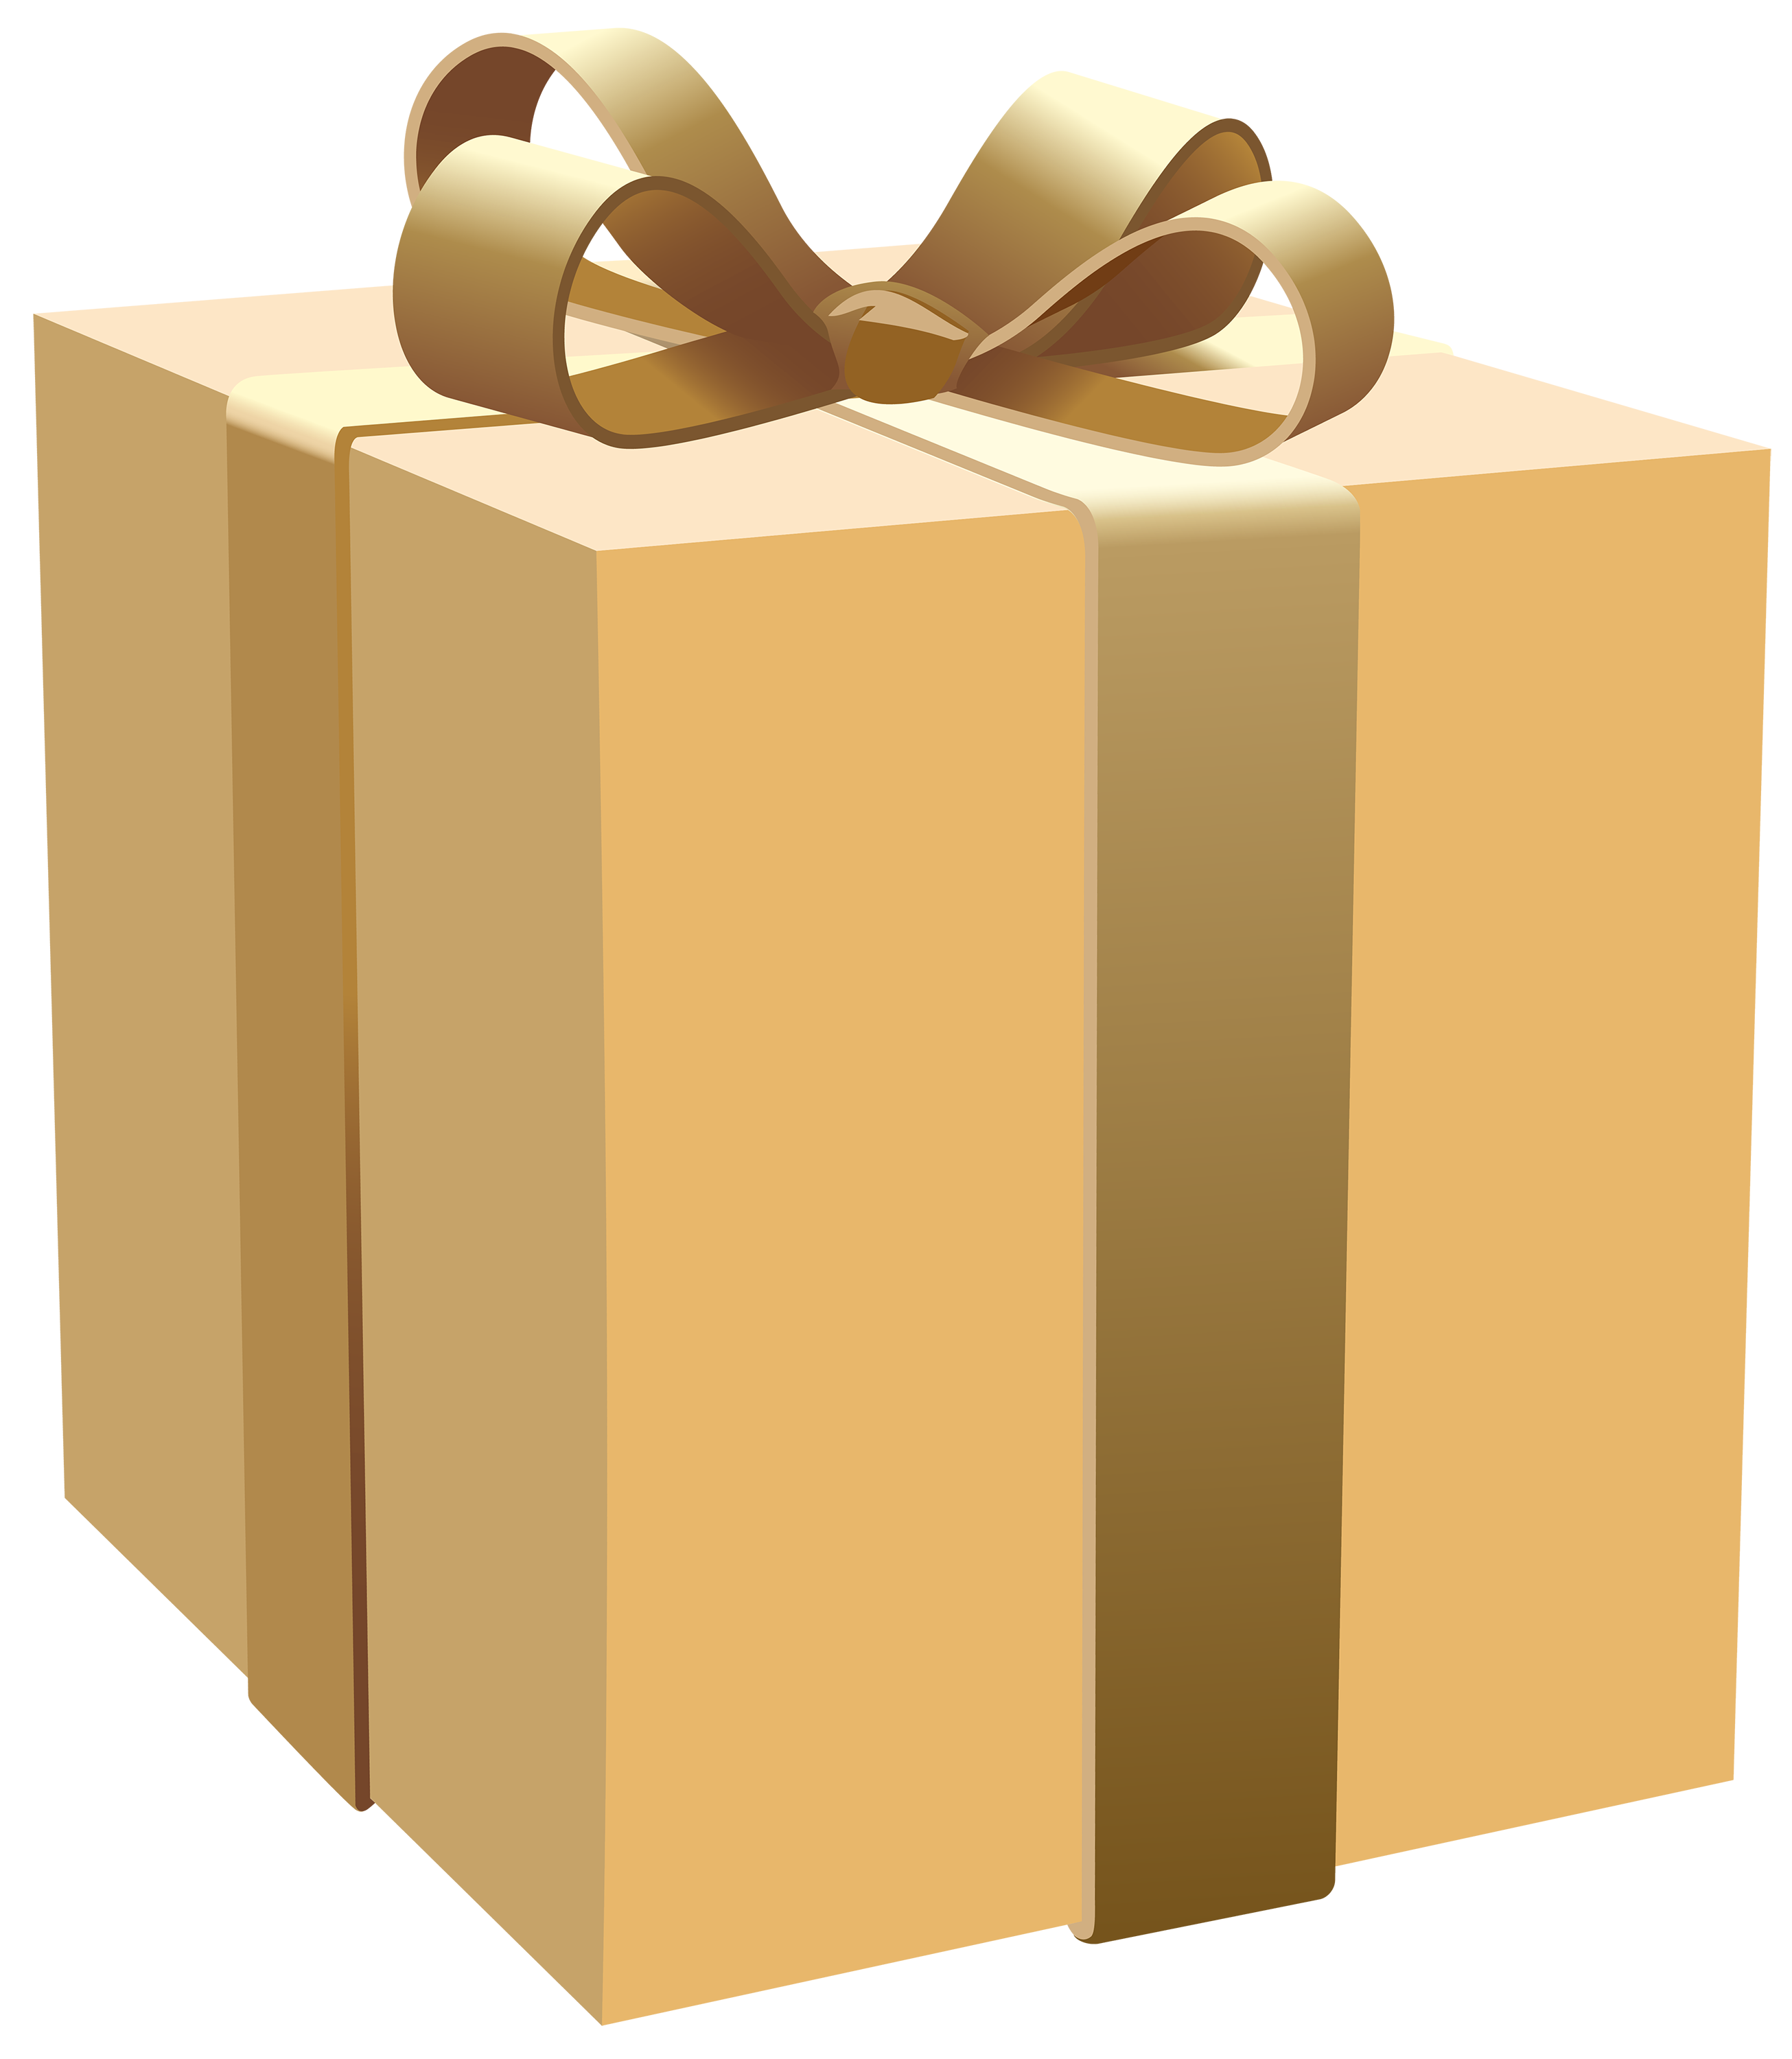 Cream clipart box. Gift png best web